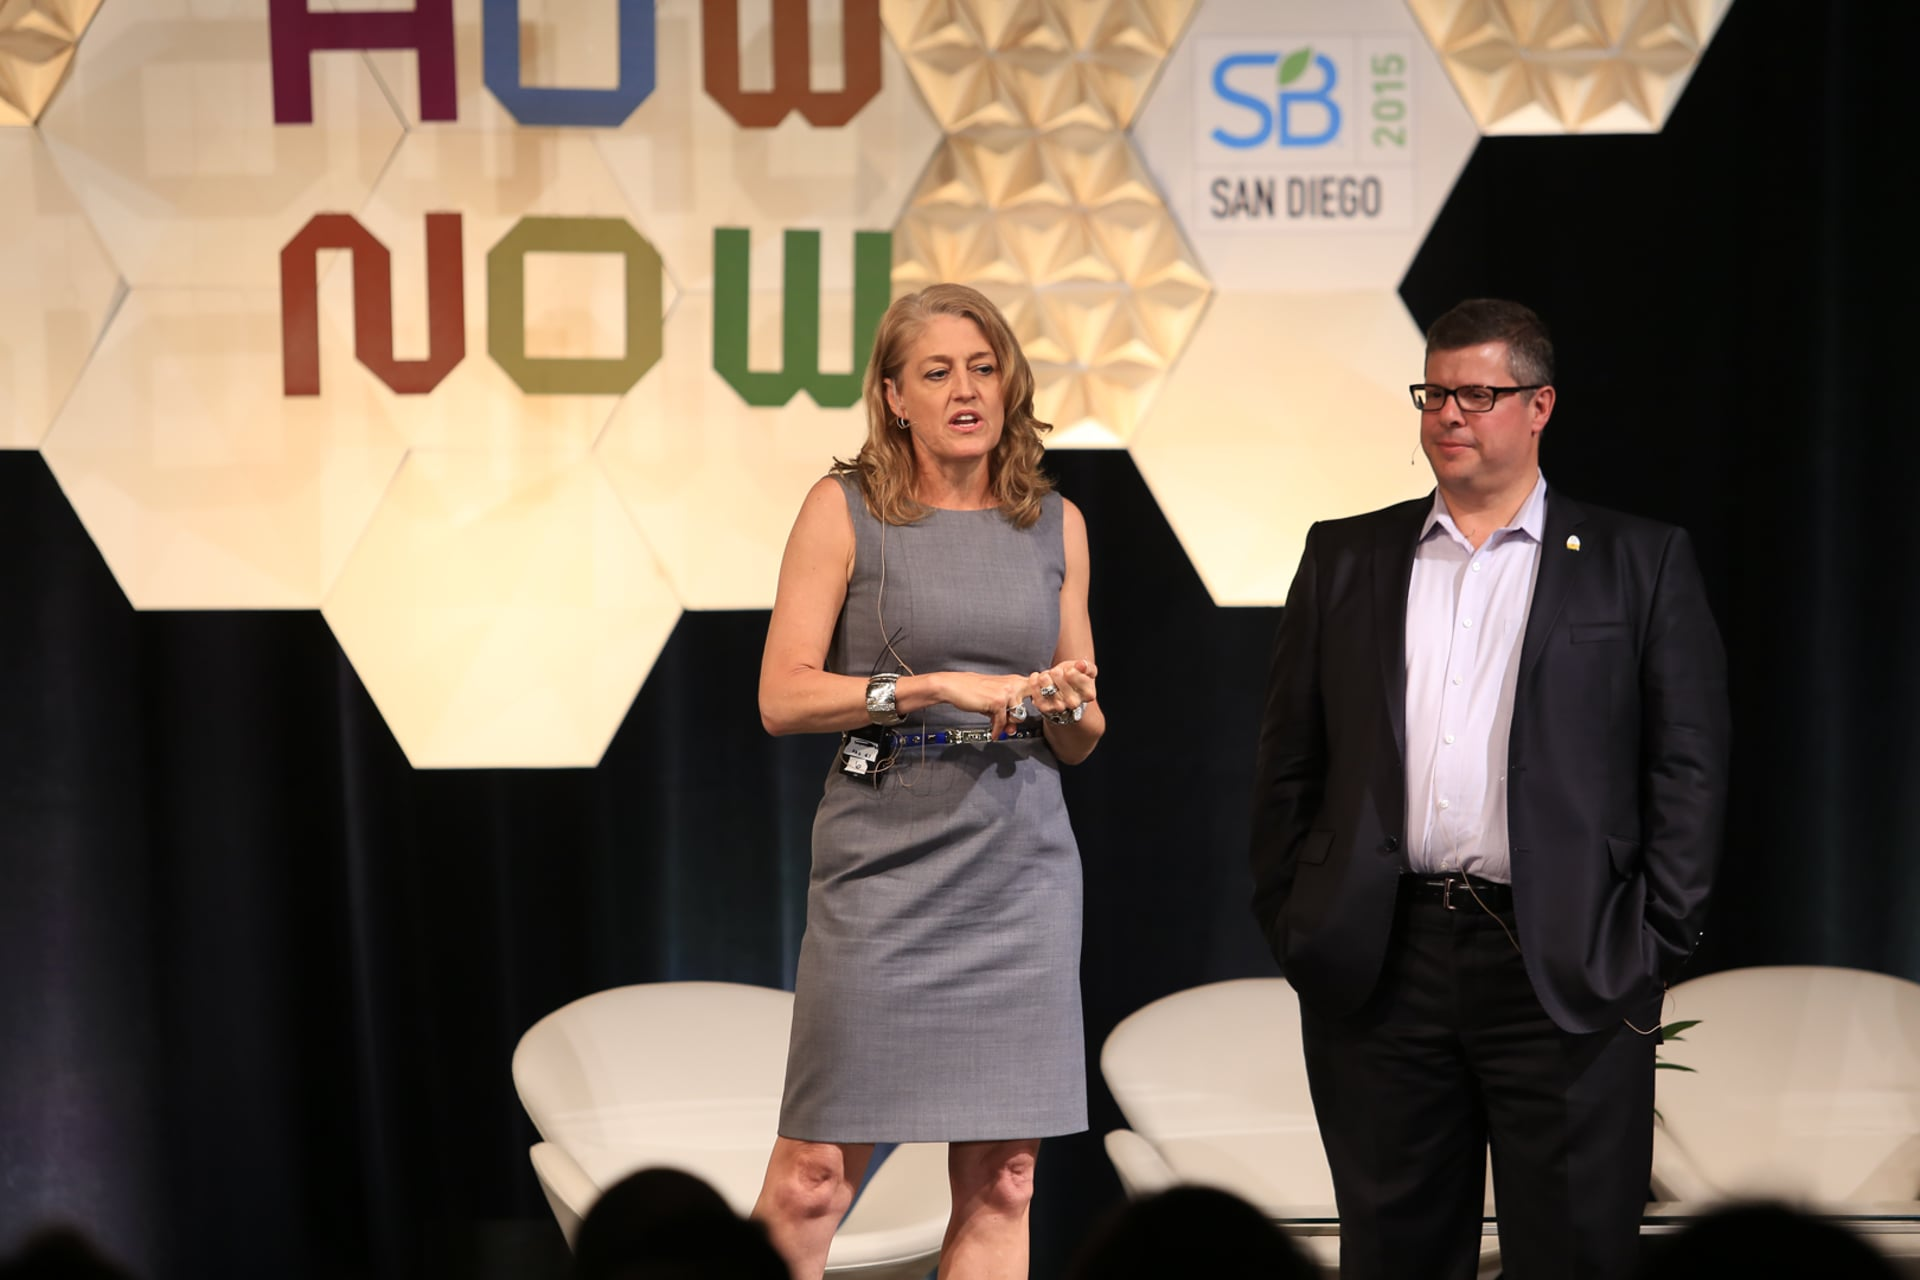 SB'15 San Diego Keynote / How to Transform Business through the Science of Purpose